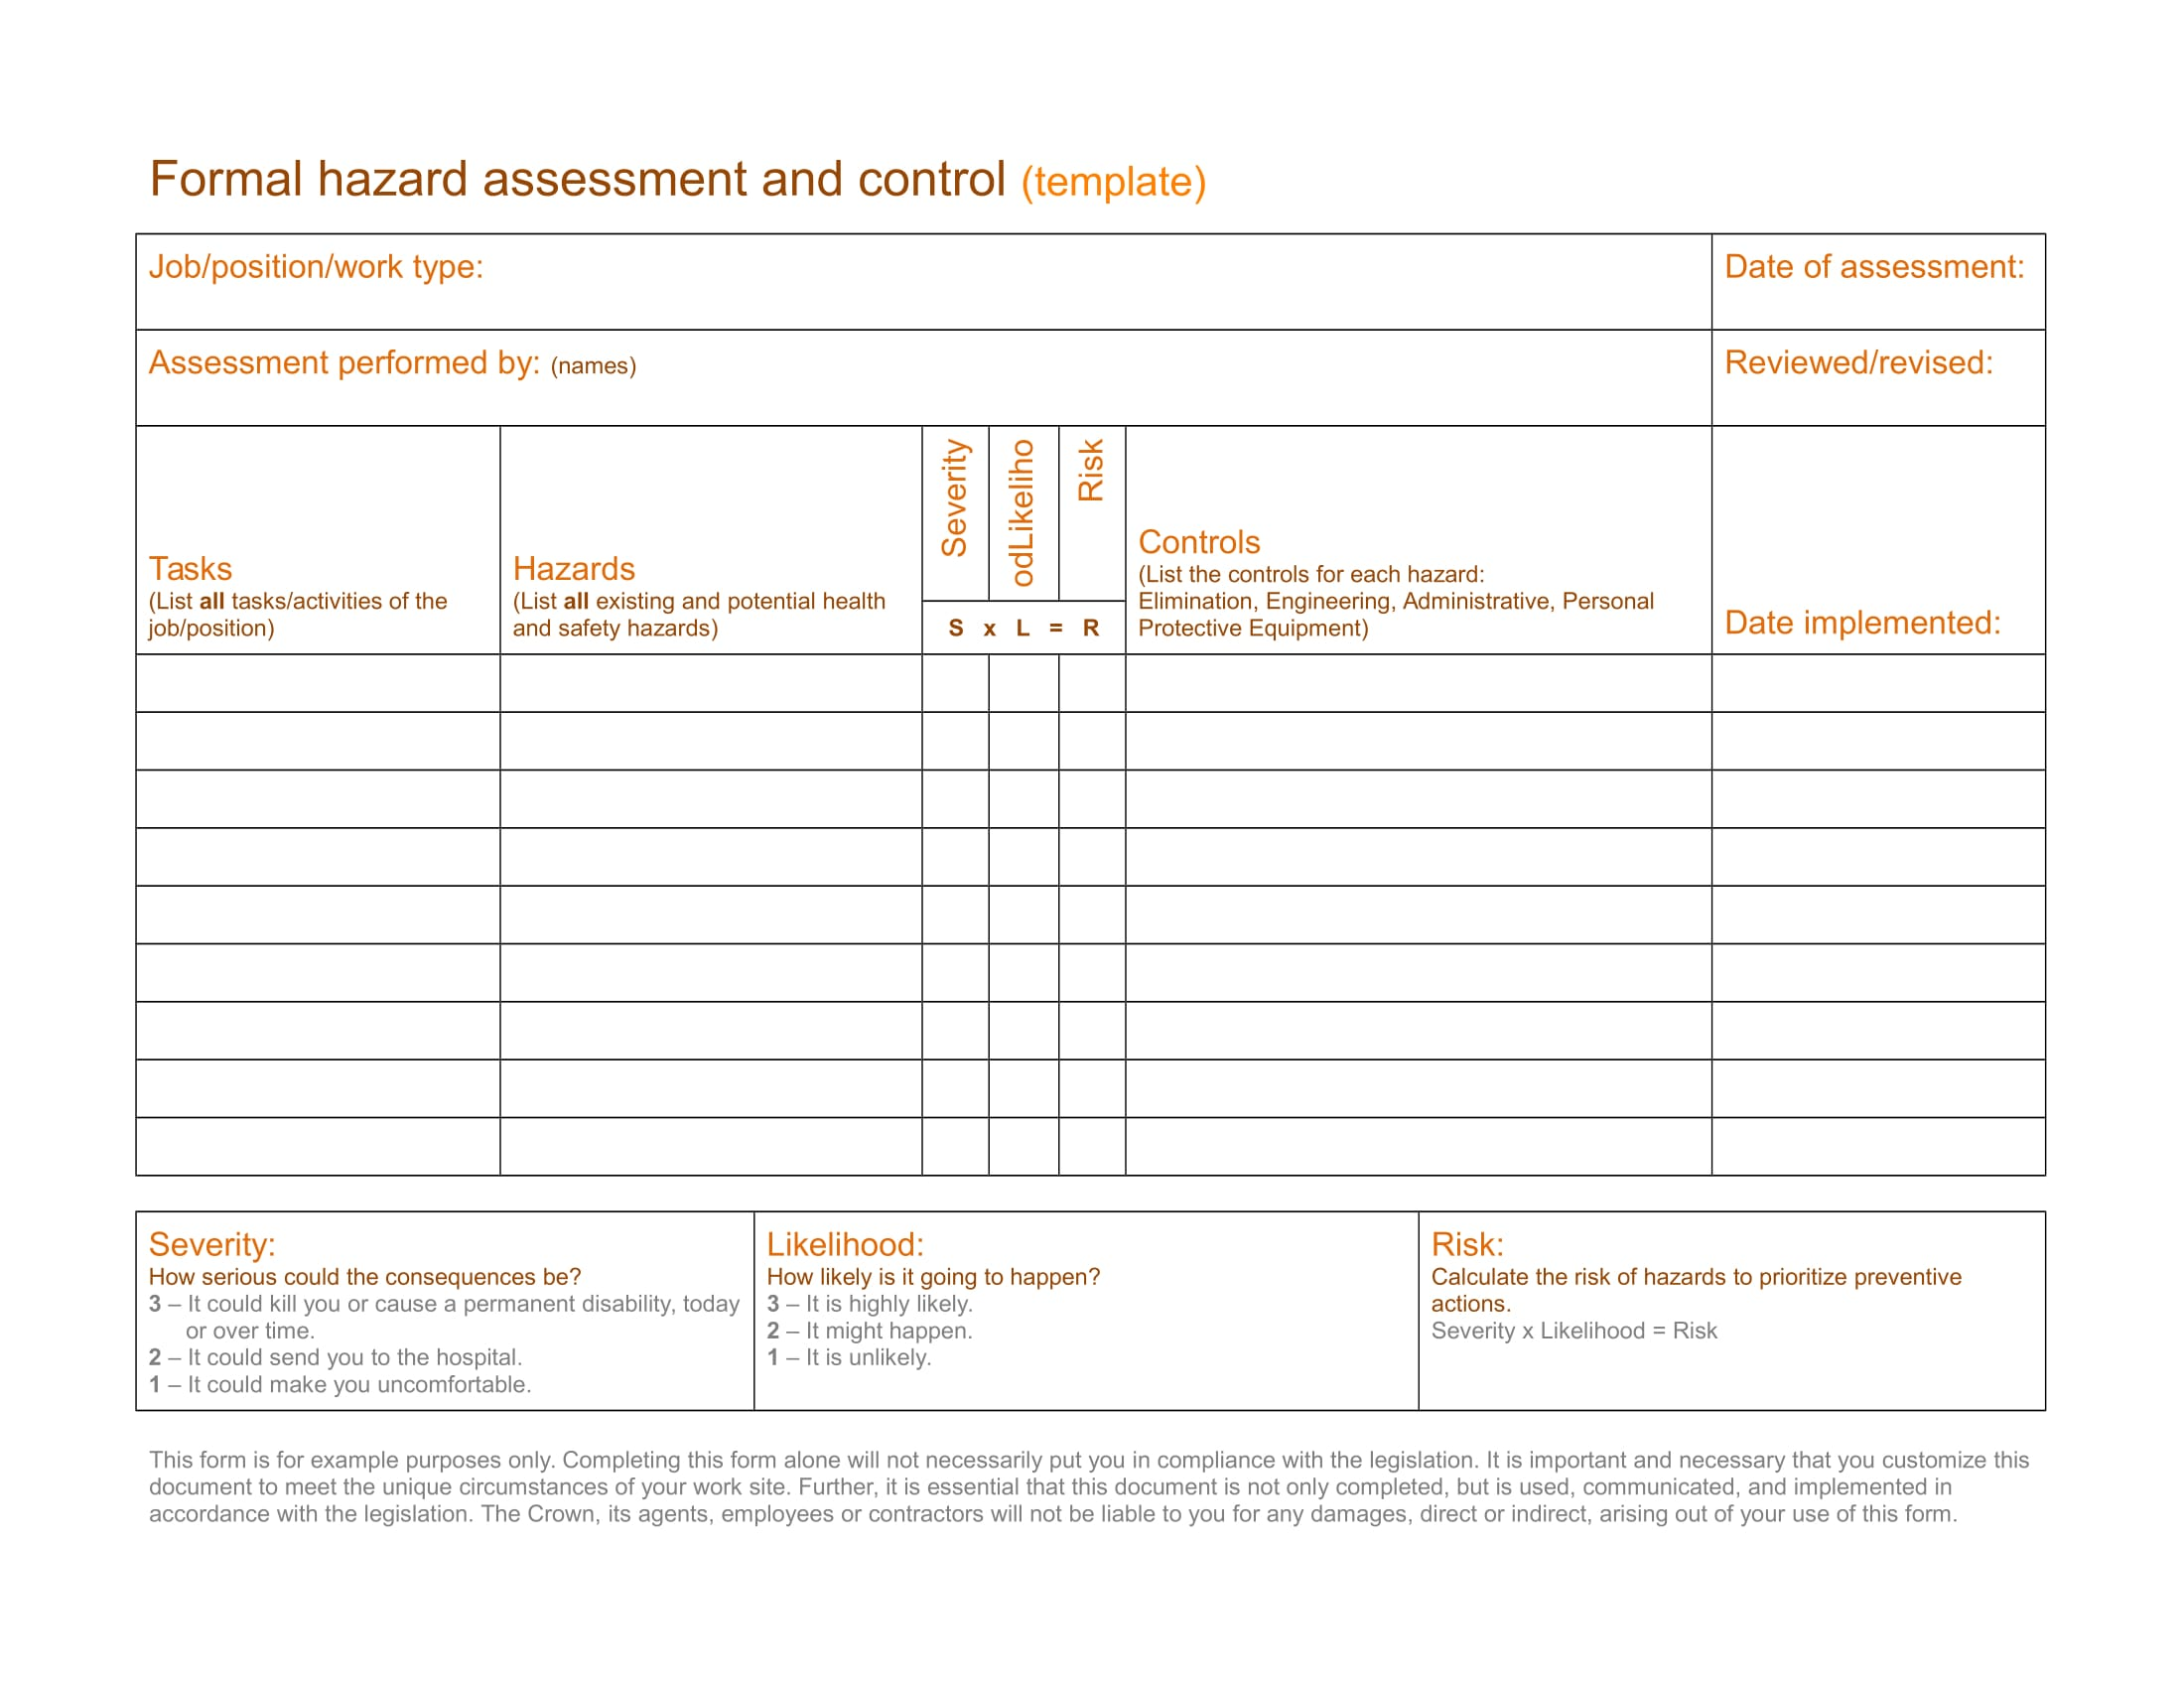 formal hazard assessment and control template example 1